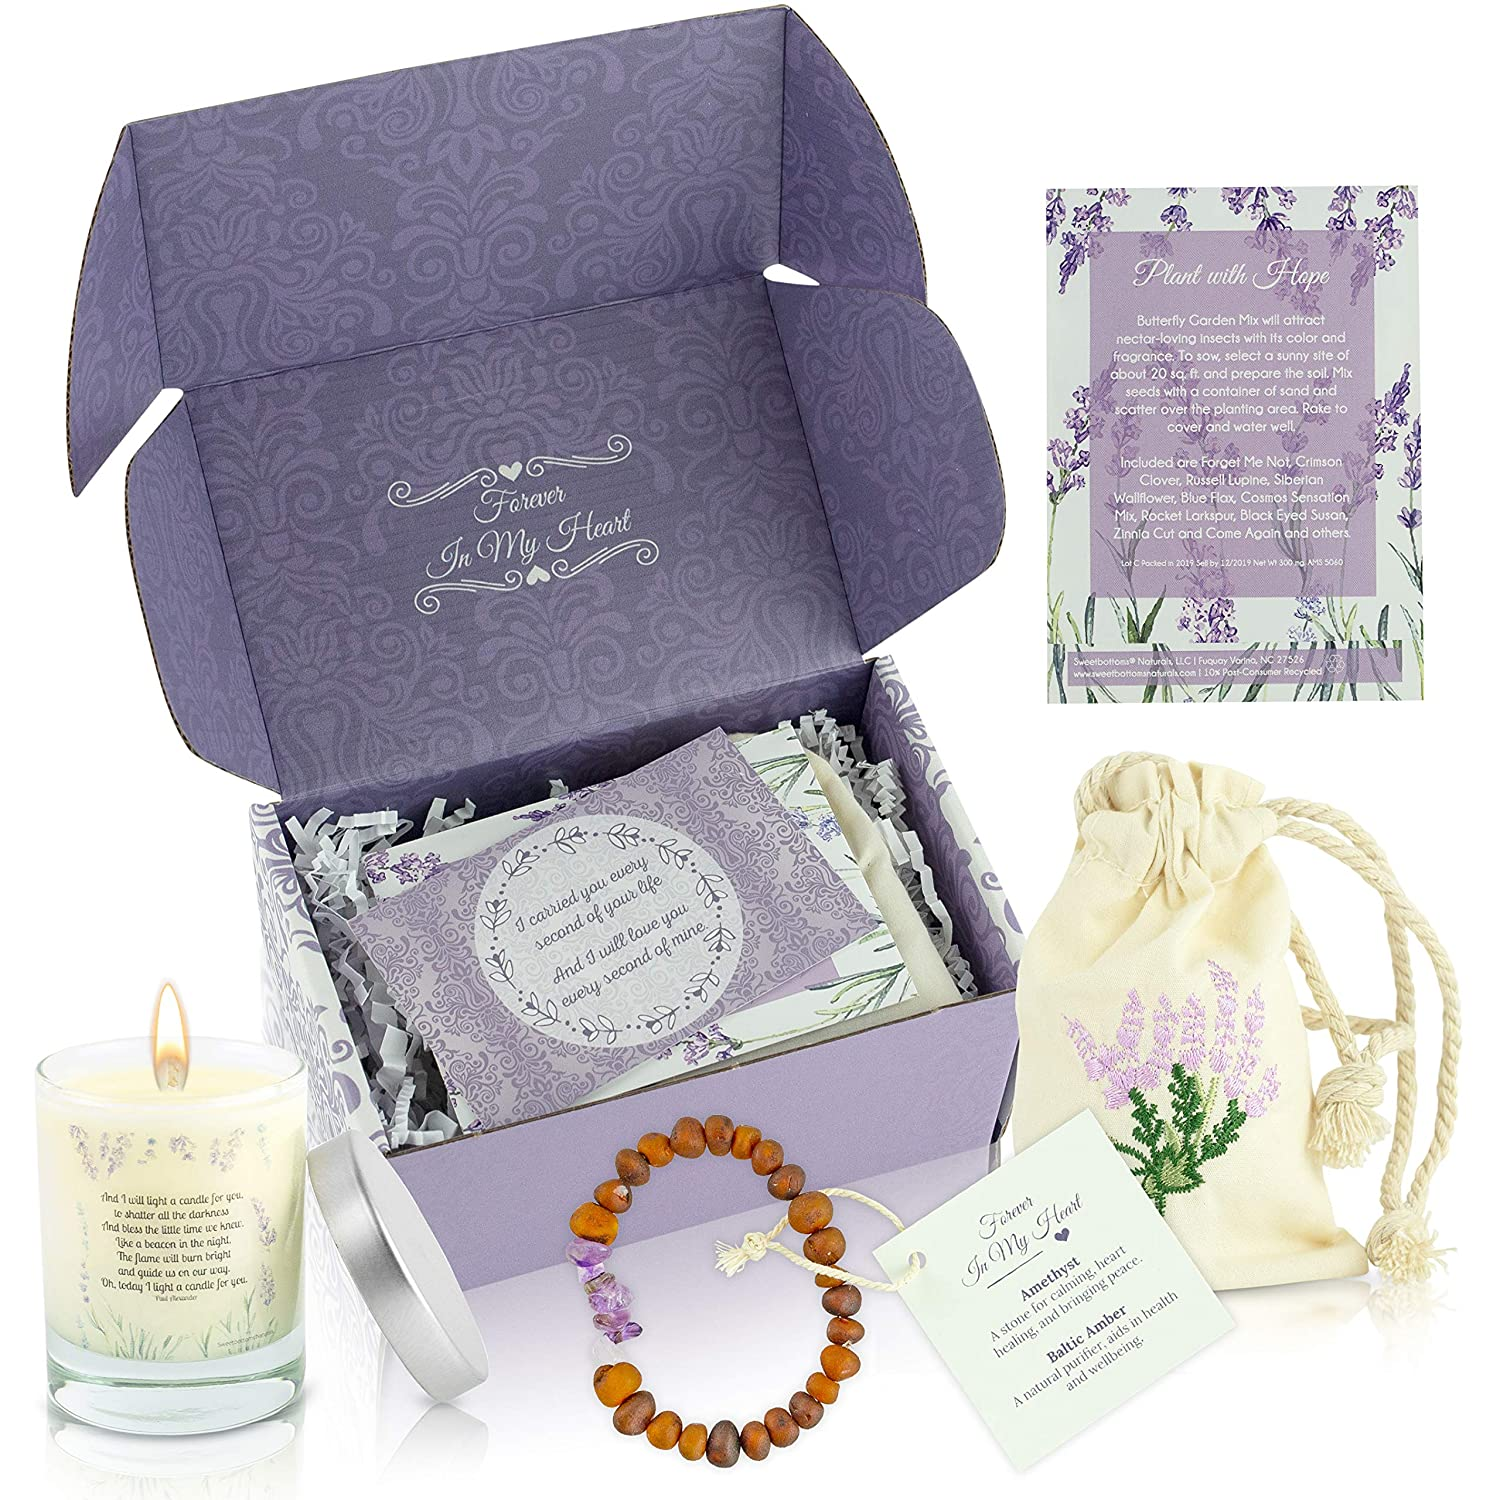 Card /& Gift Box Unique Remembrance Gift for Loss of a Baby Memorial Jewelry Flower Seeds Uplifting Loss of a Child Memorial Gift Express Your Sympathy 4-Piece Gift Set with Candle